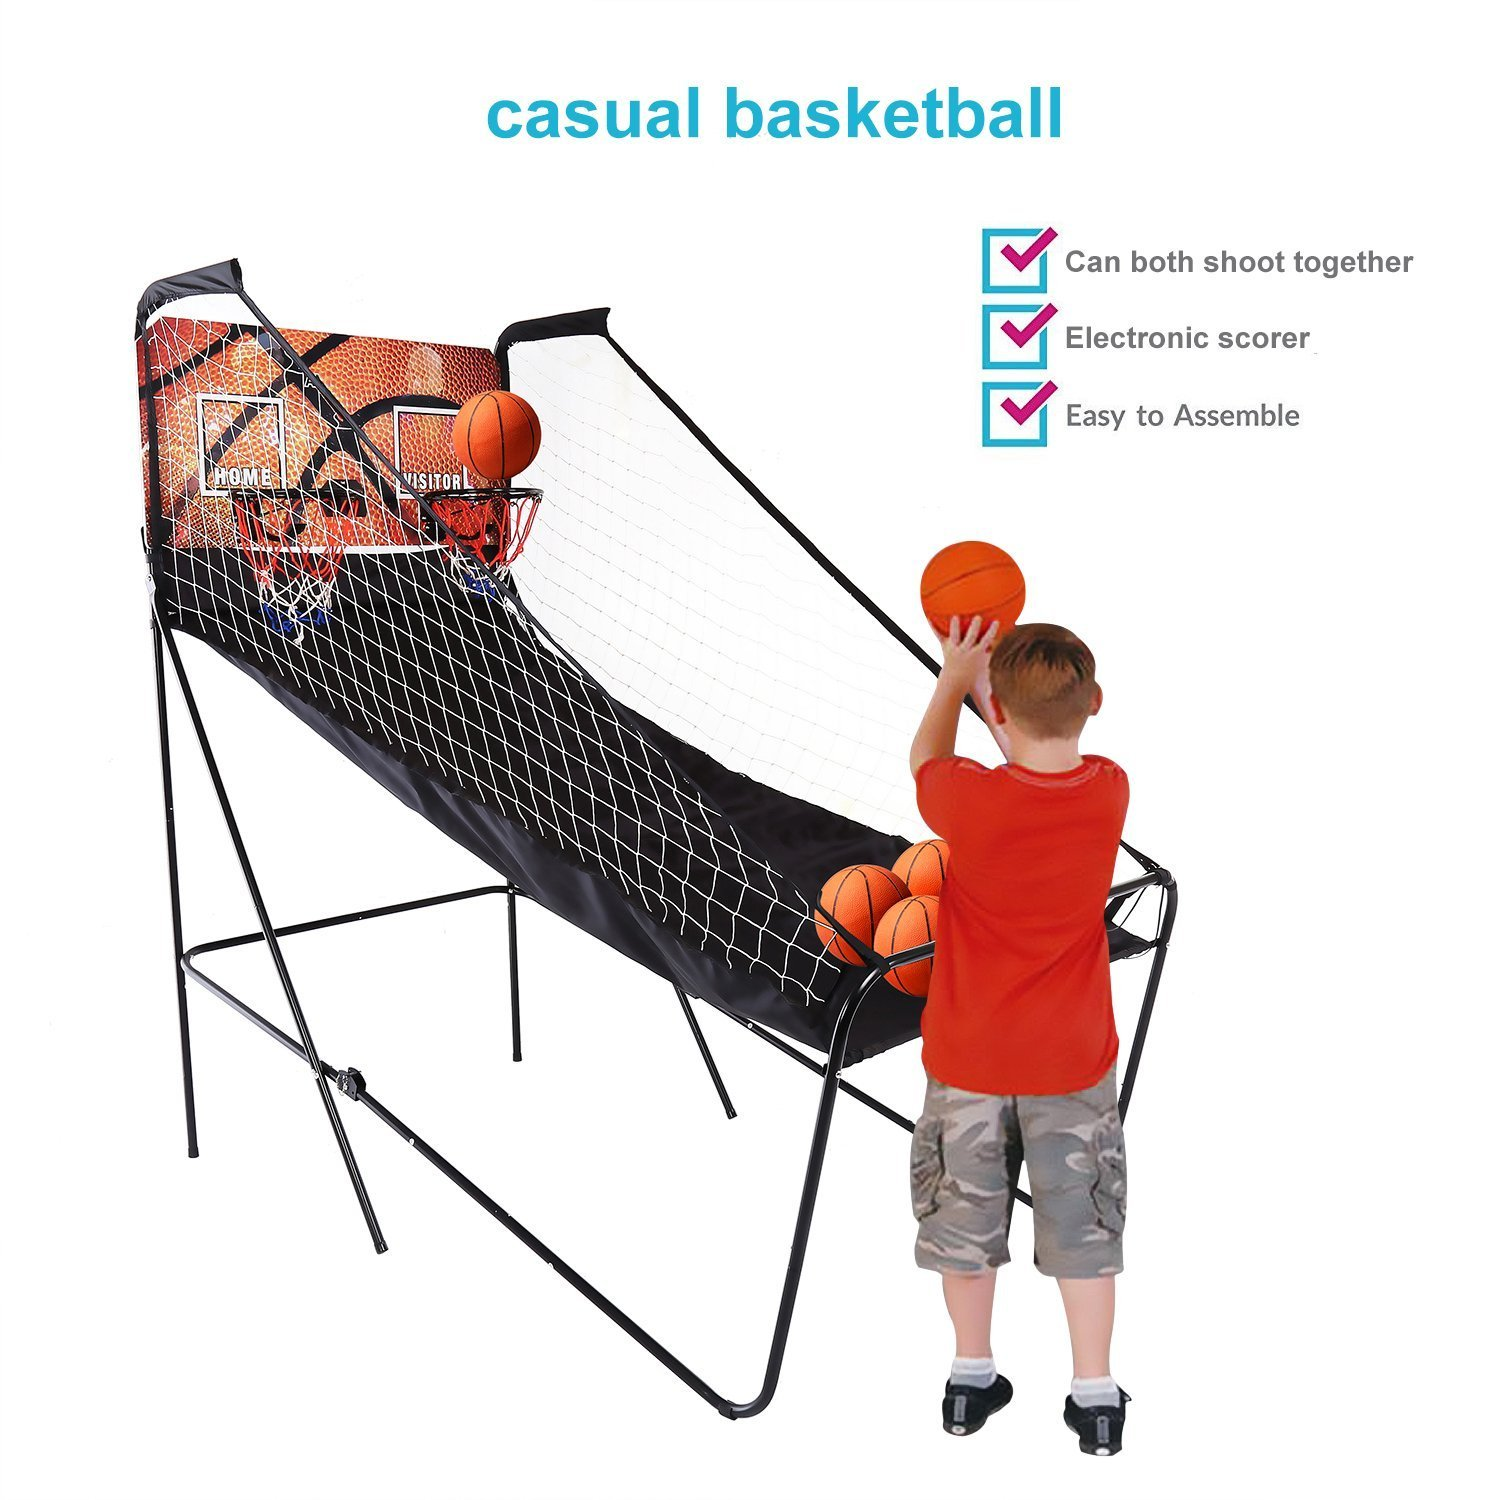 Sportcraft SIR00733 Quick Set-Up Basketball Arcade 8 Game Modes, 2-Players, Setup Less Than 10 Mins, No Tools Required, Heavy Duty 1'' Steel Tube by Sportcraft (Image #12)